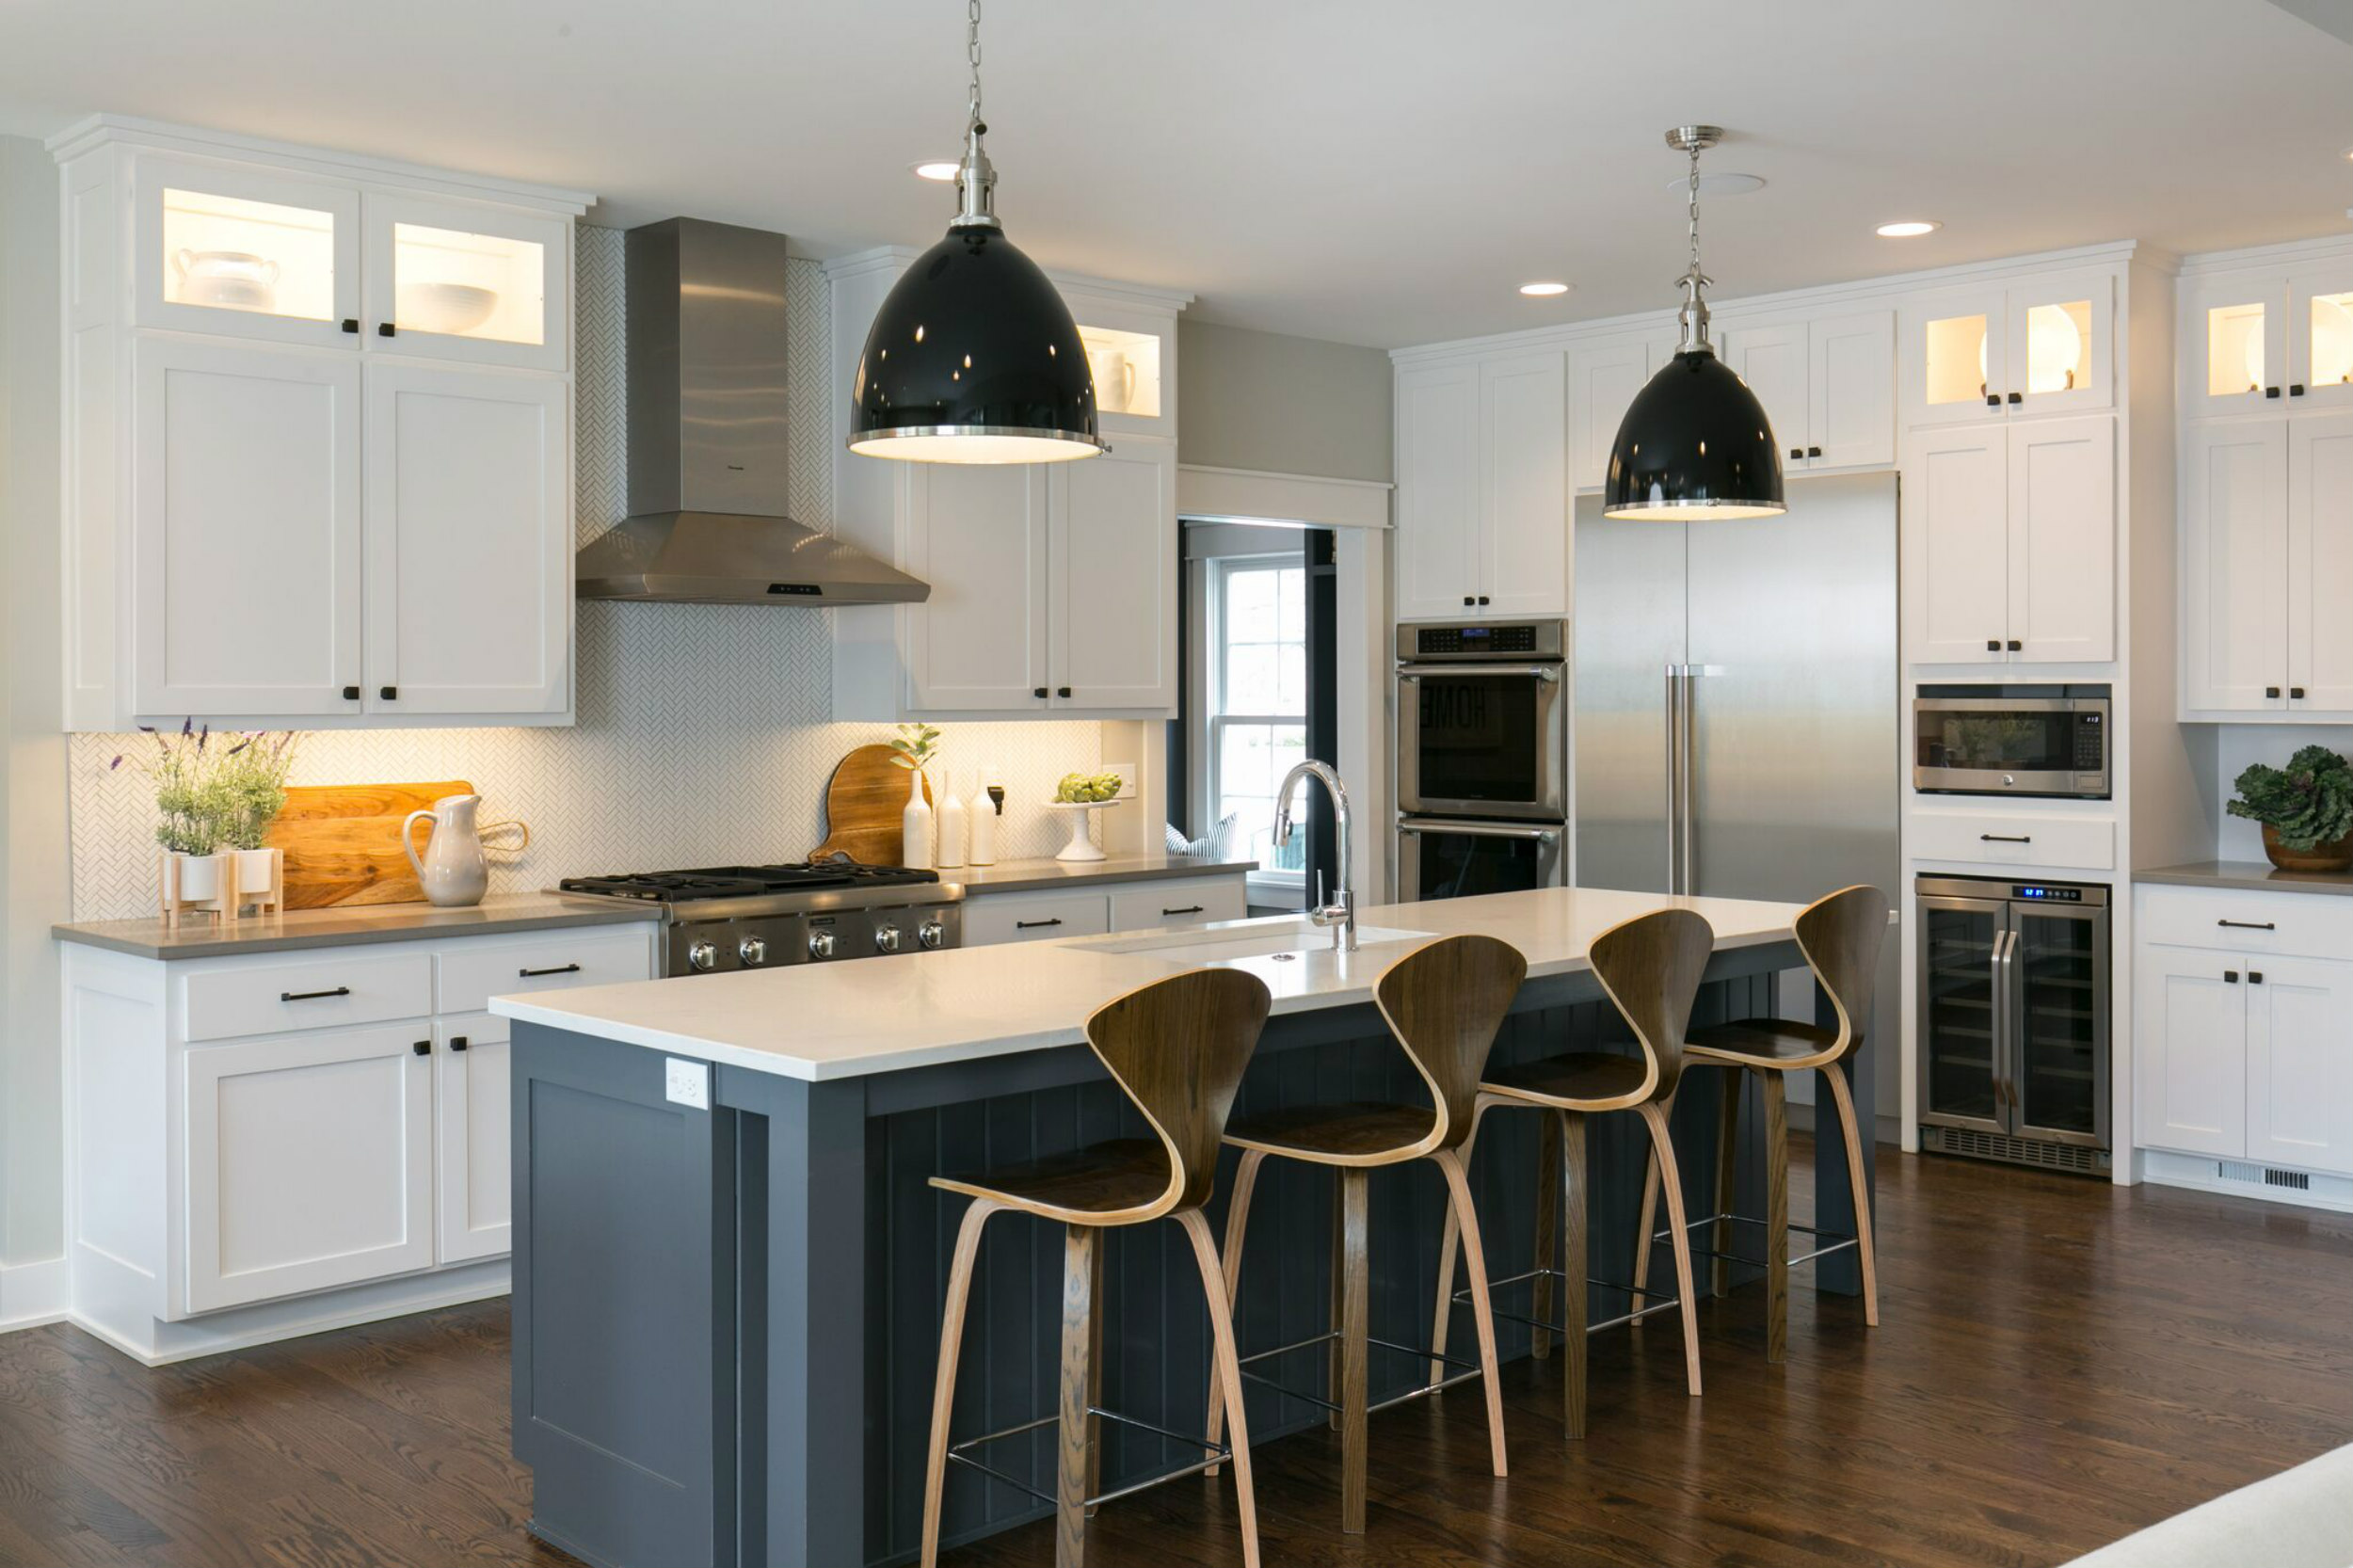 Staged home tour modern farmhouse new construction built for kansas city parade of homes